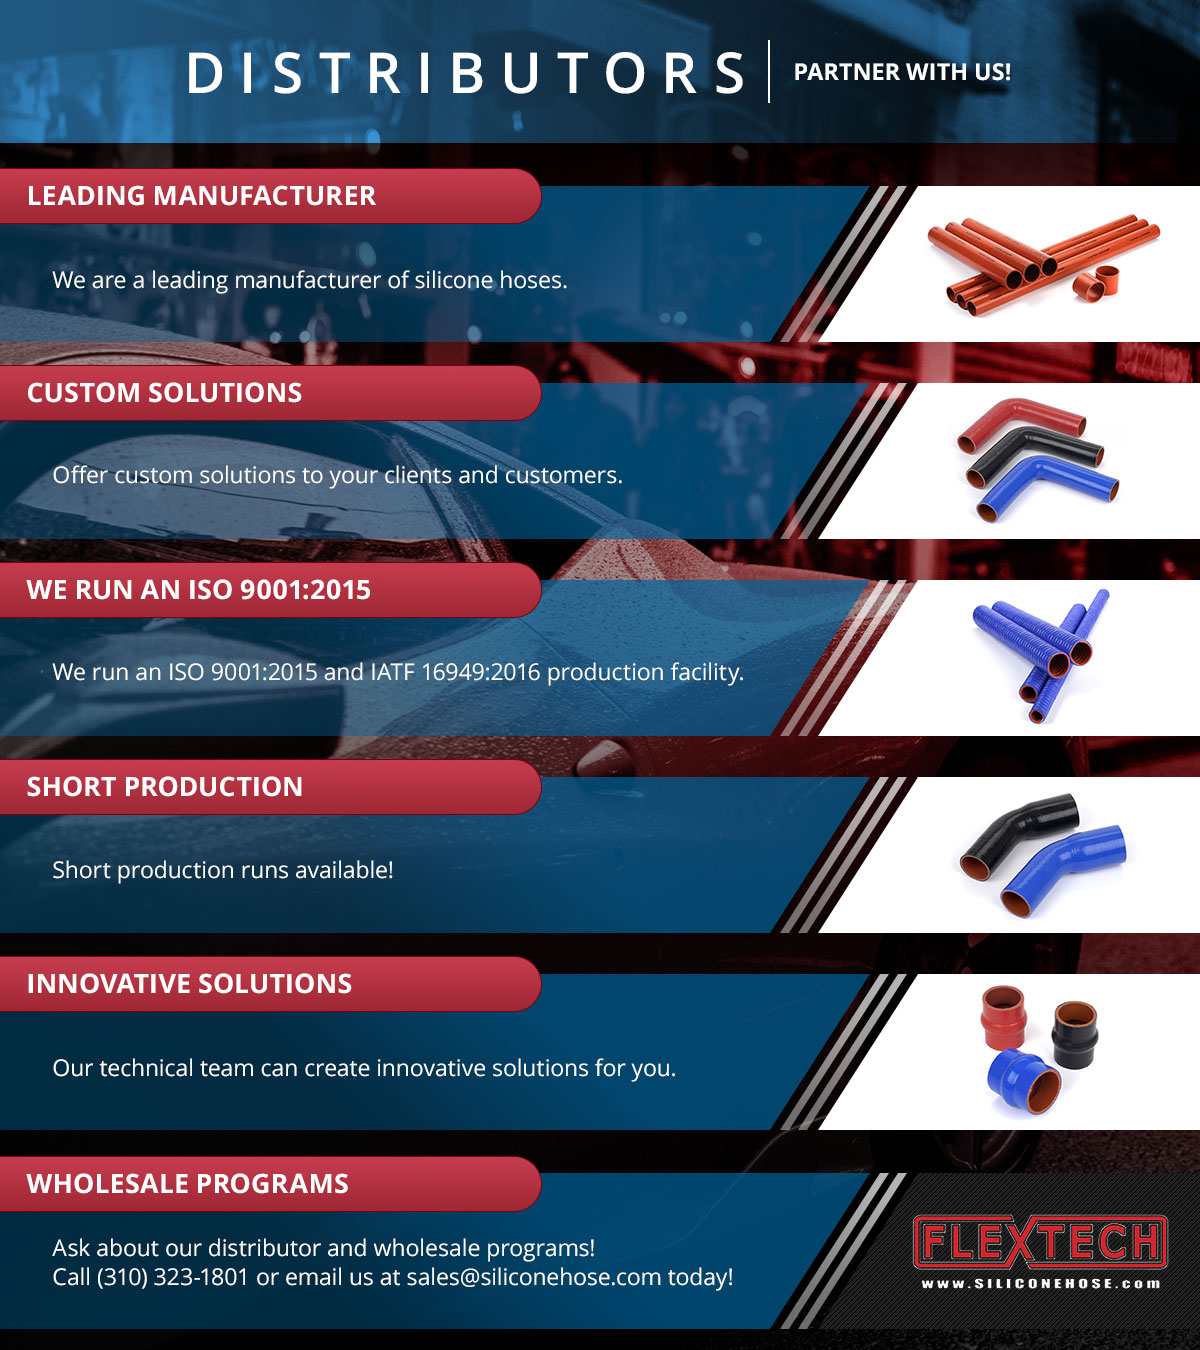 for-distributors-page-infographic.jpg